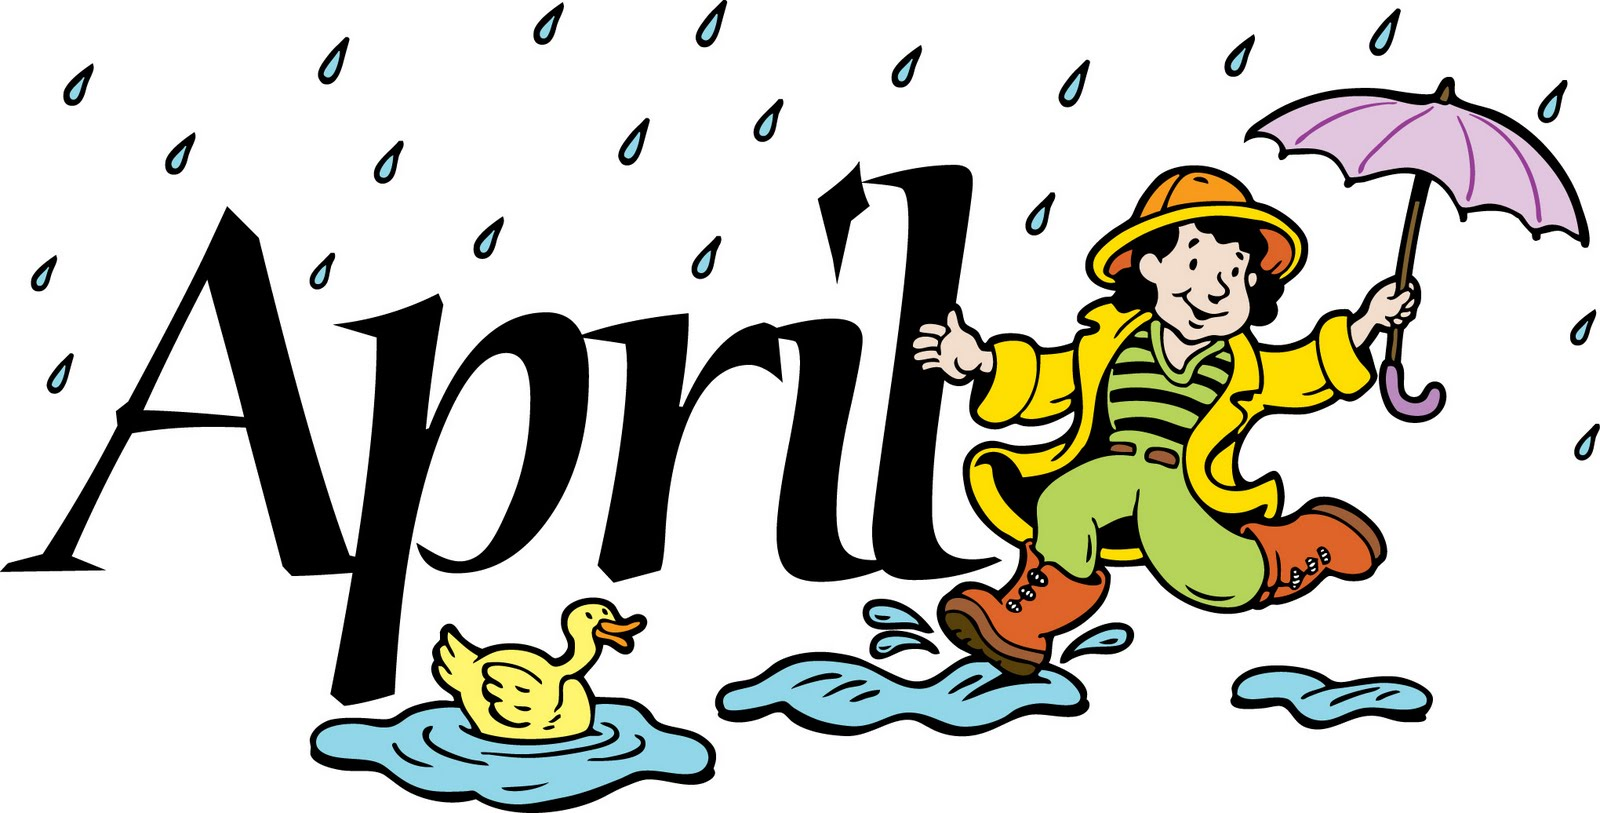 April Calendar Clip Art : April calendar clipart best